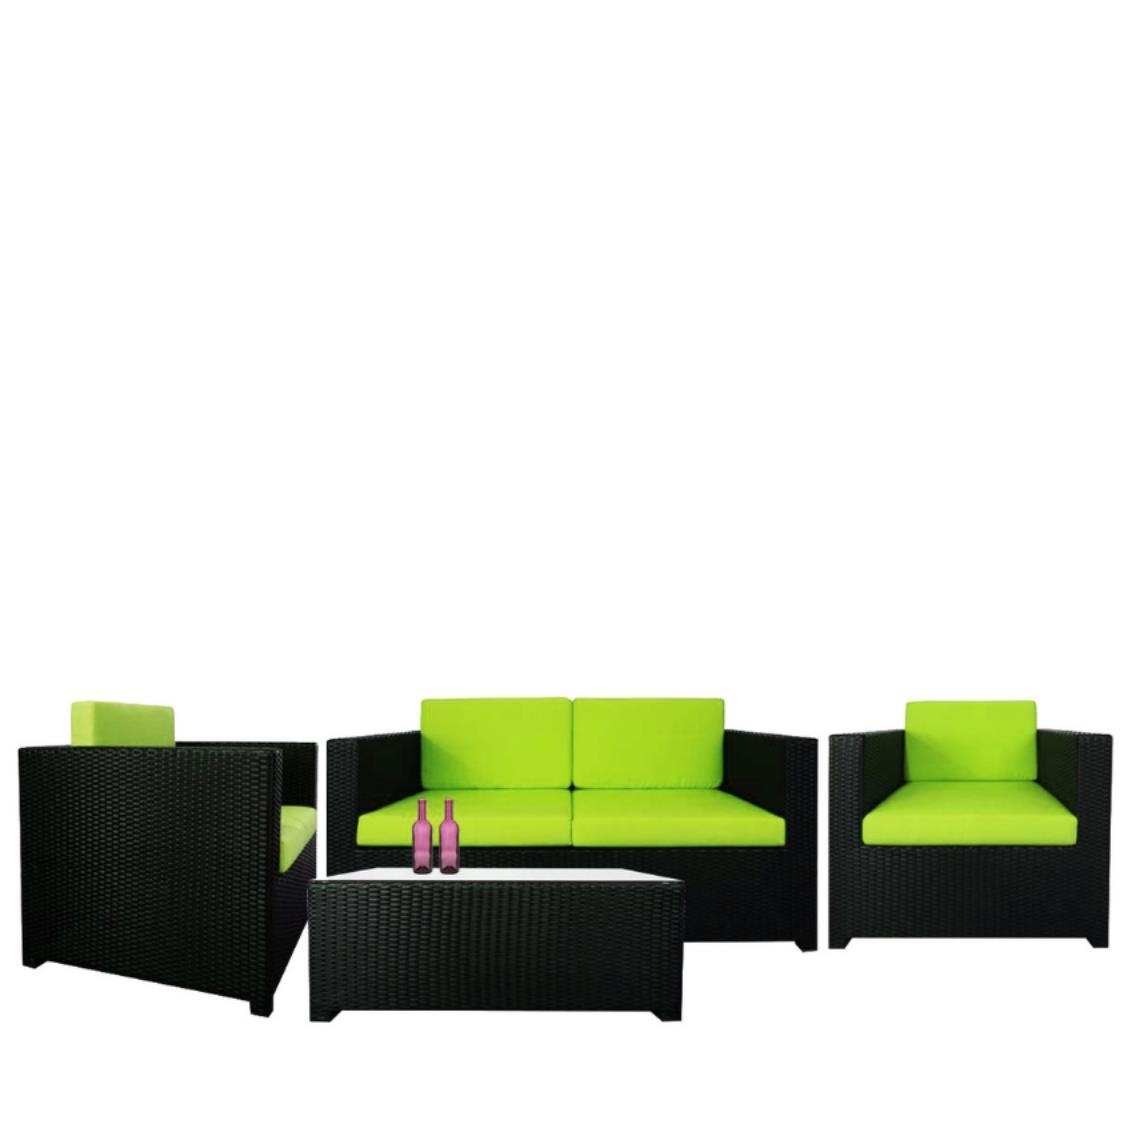 Fiesta Sofa Set II Green Cushions